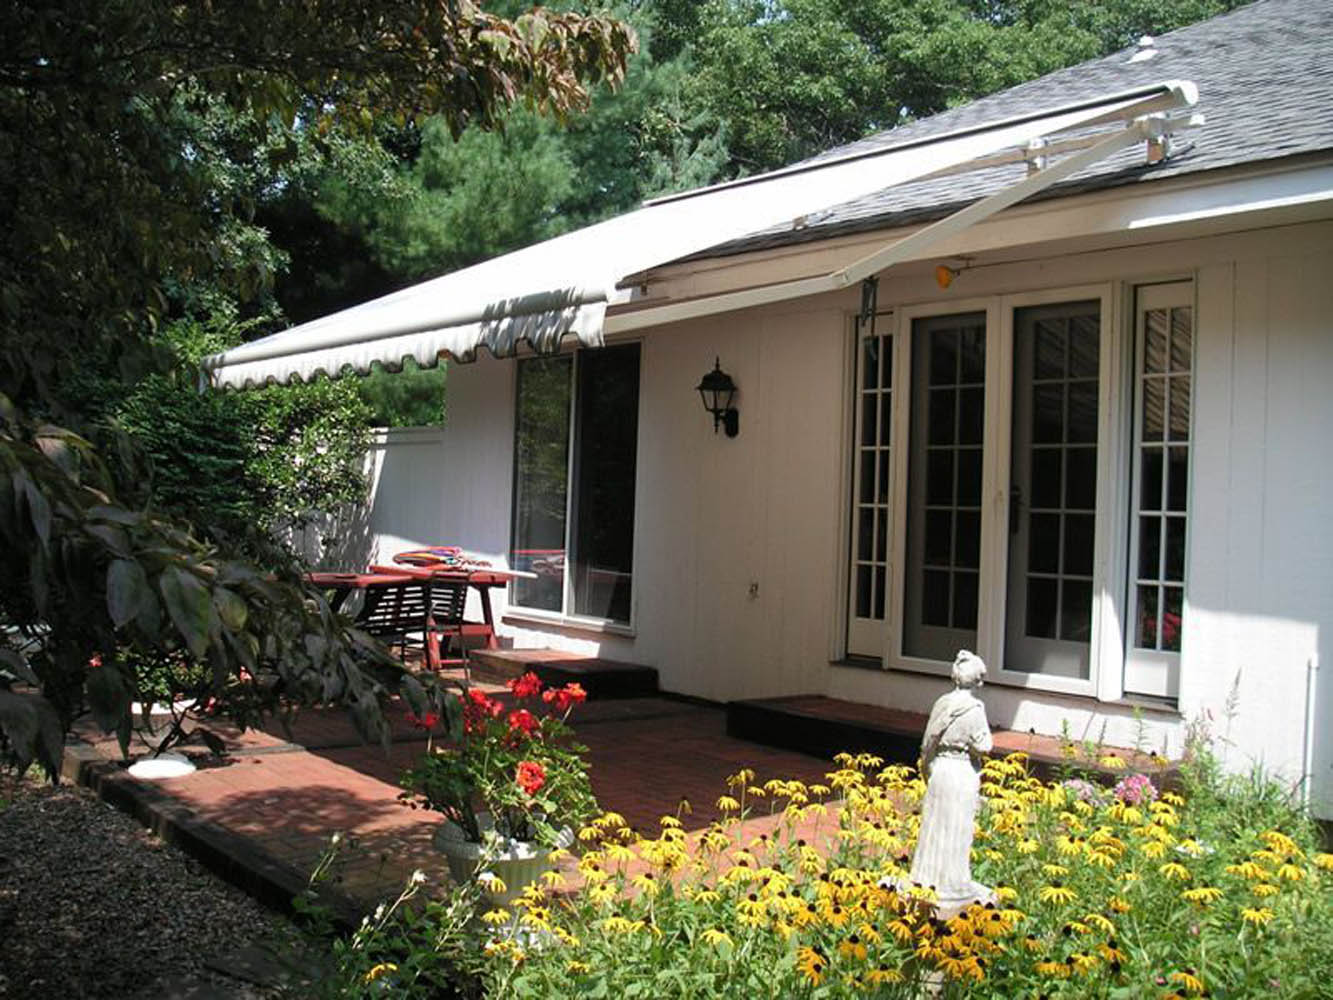 Eclipse Sc Dayton Retractable Awnings Kettering